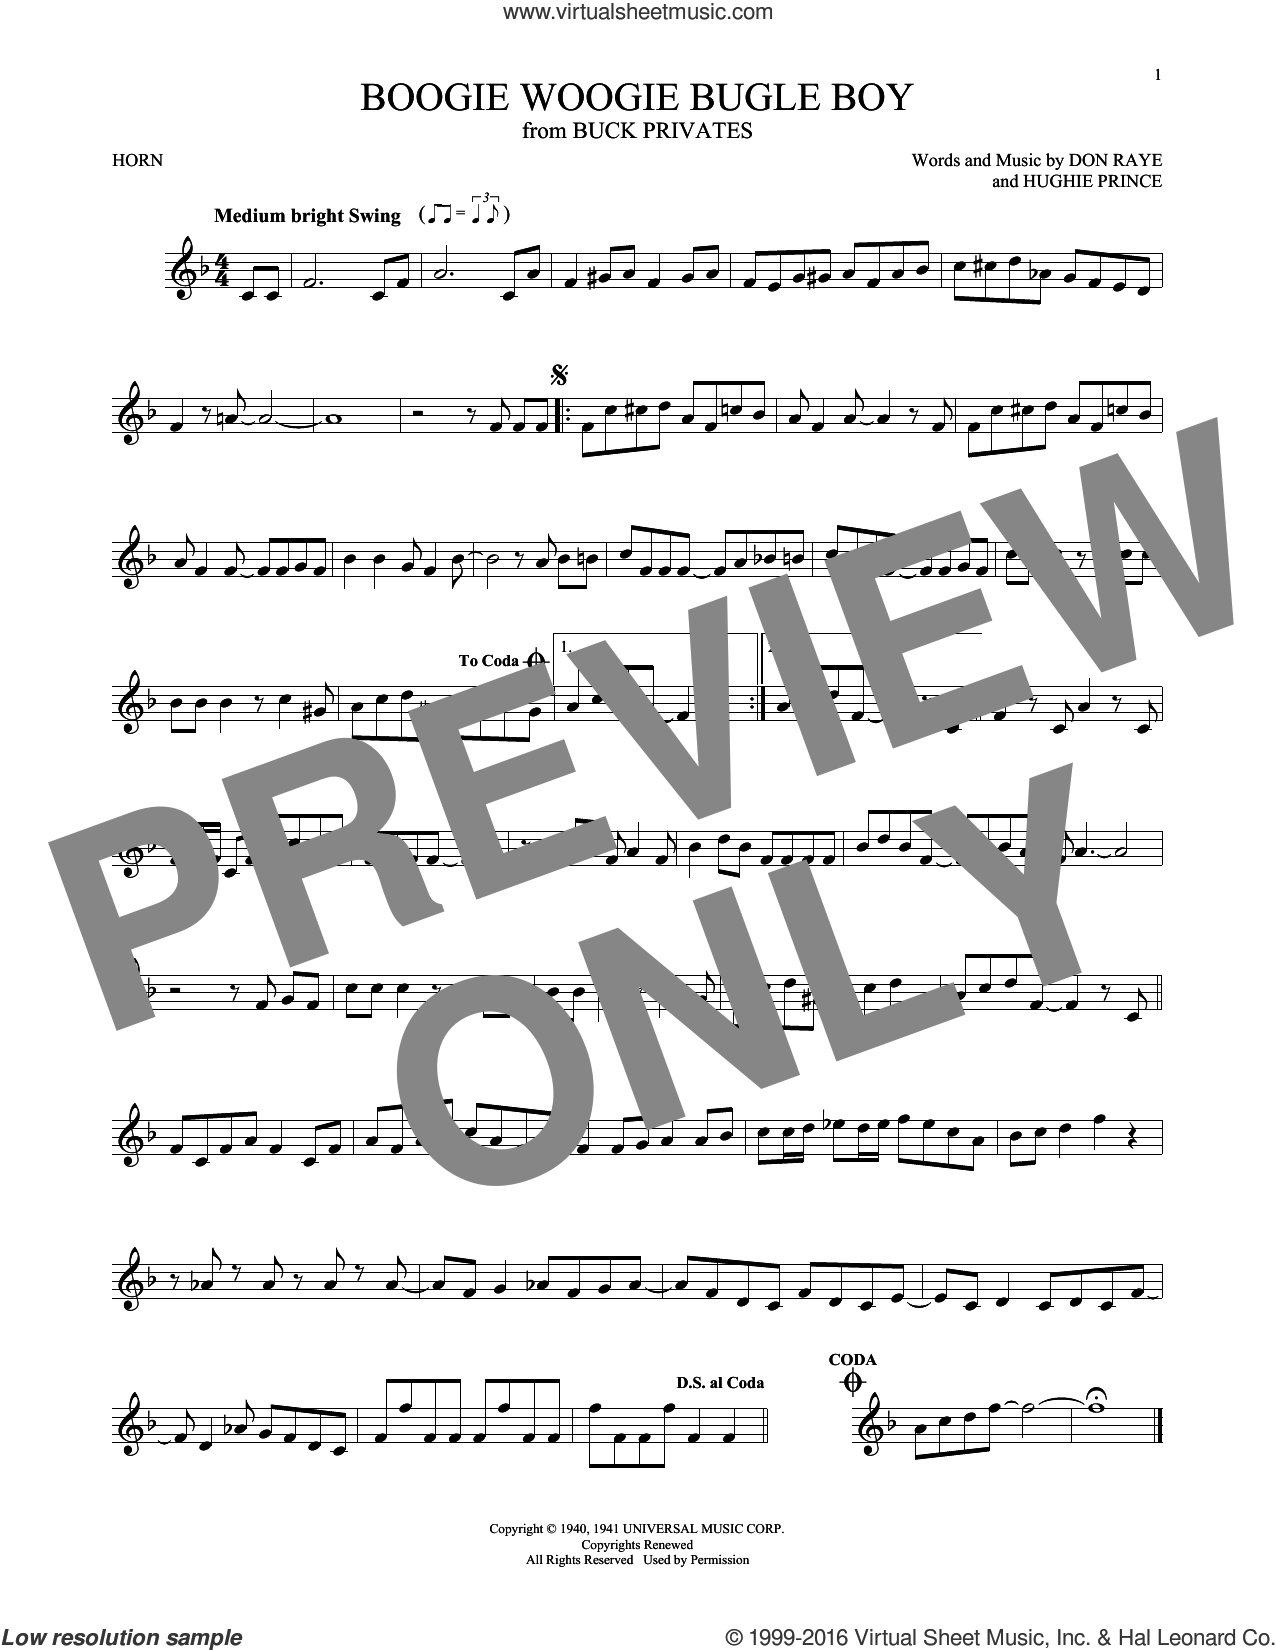 Boogie Woogie Bugle Boy sheet music for horn solo by Hughie Prince, Bette Midler and Don Raye. Score Image Preview.